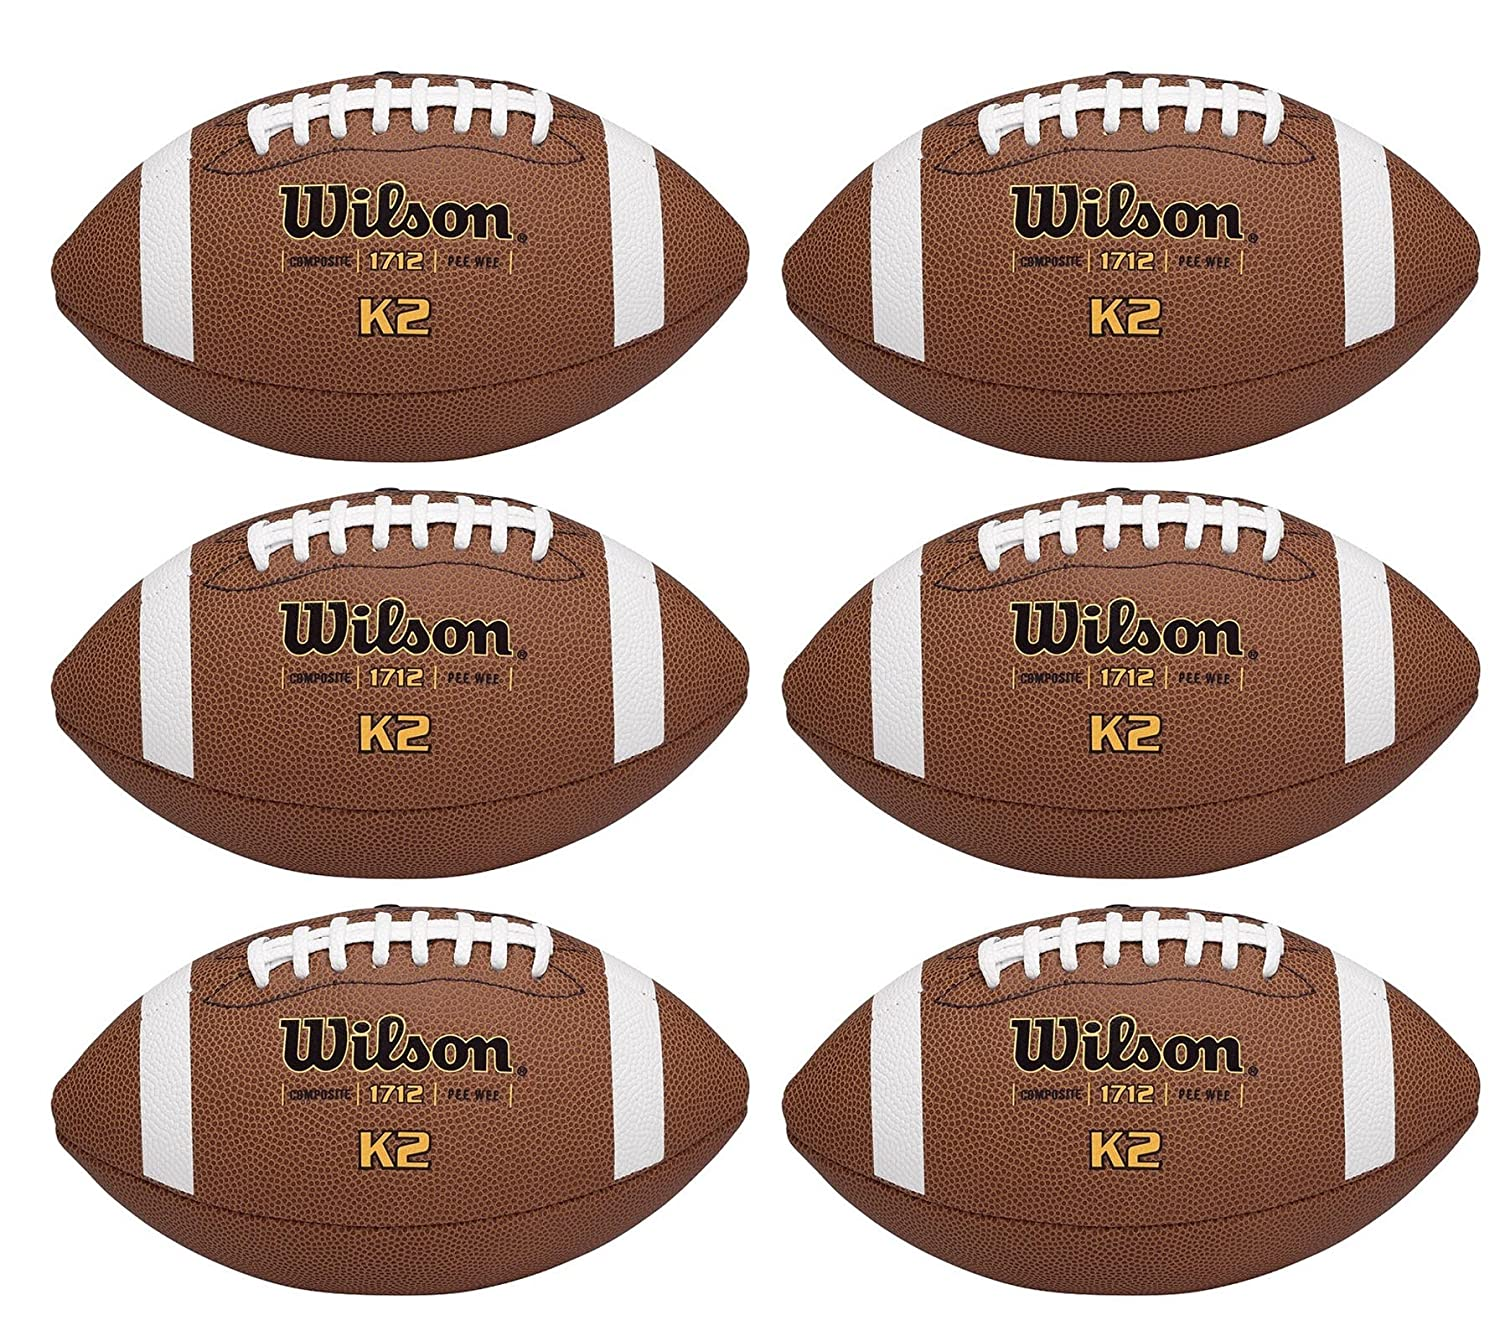 цена на (6) WILSON K2 Pee-Wee Size Soft Composite Leather Game Sport Footballs | WTF1712